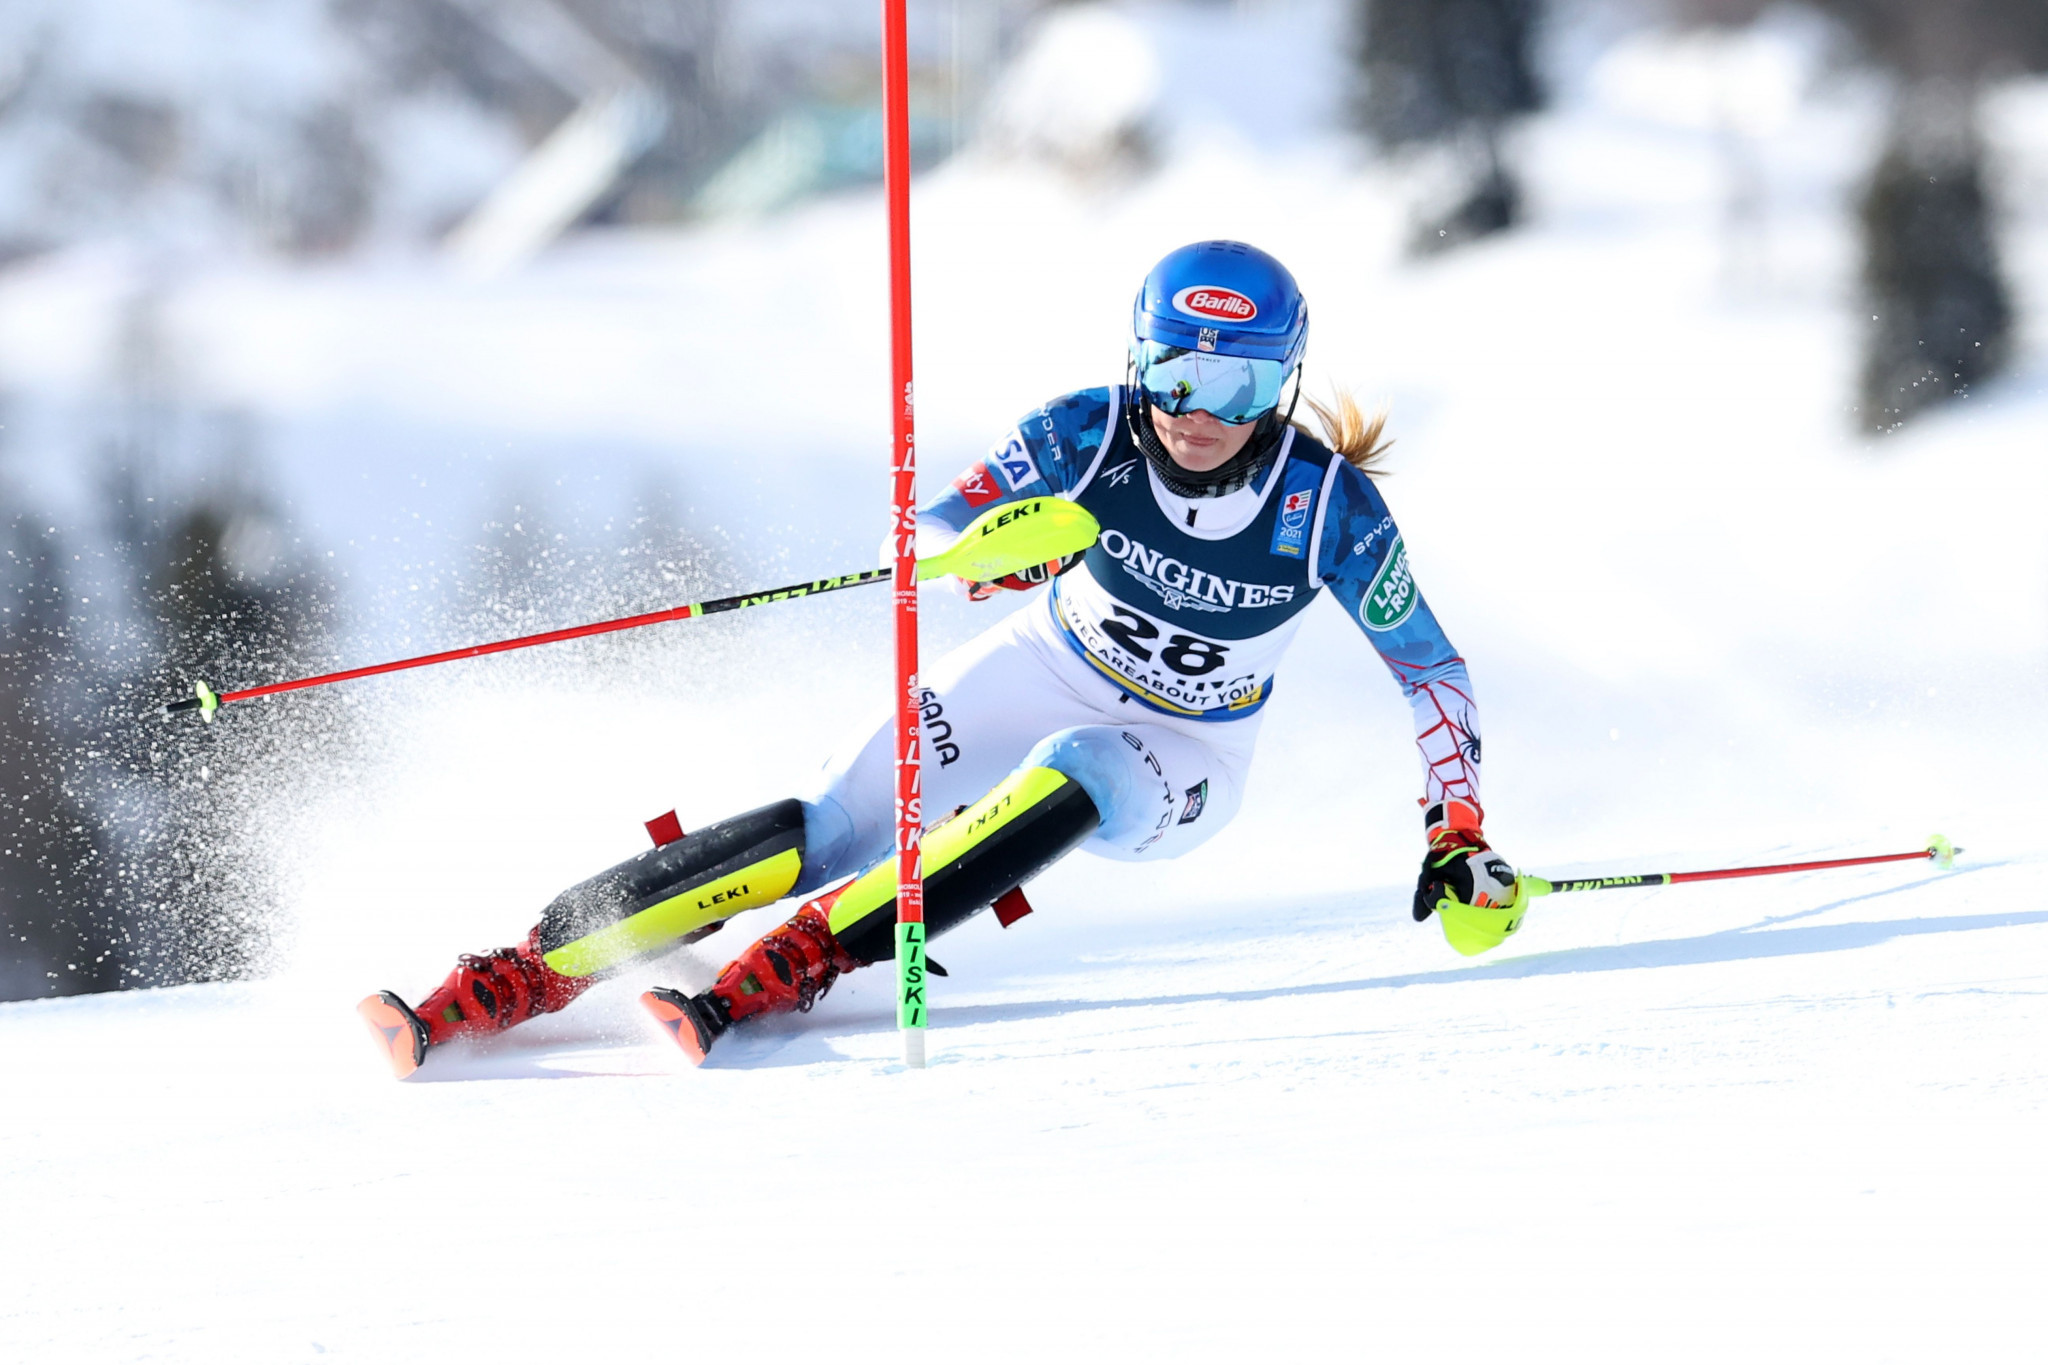 Mikaela Shiffrin earned her sixth title at the Alpine Ski World Championships ©Getty Images